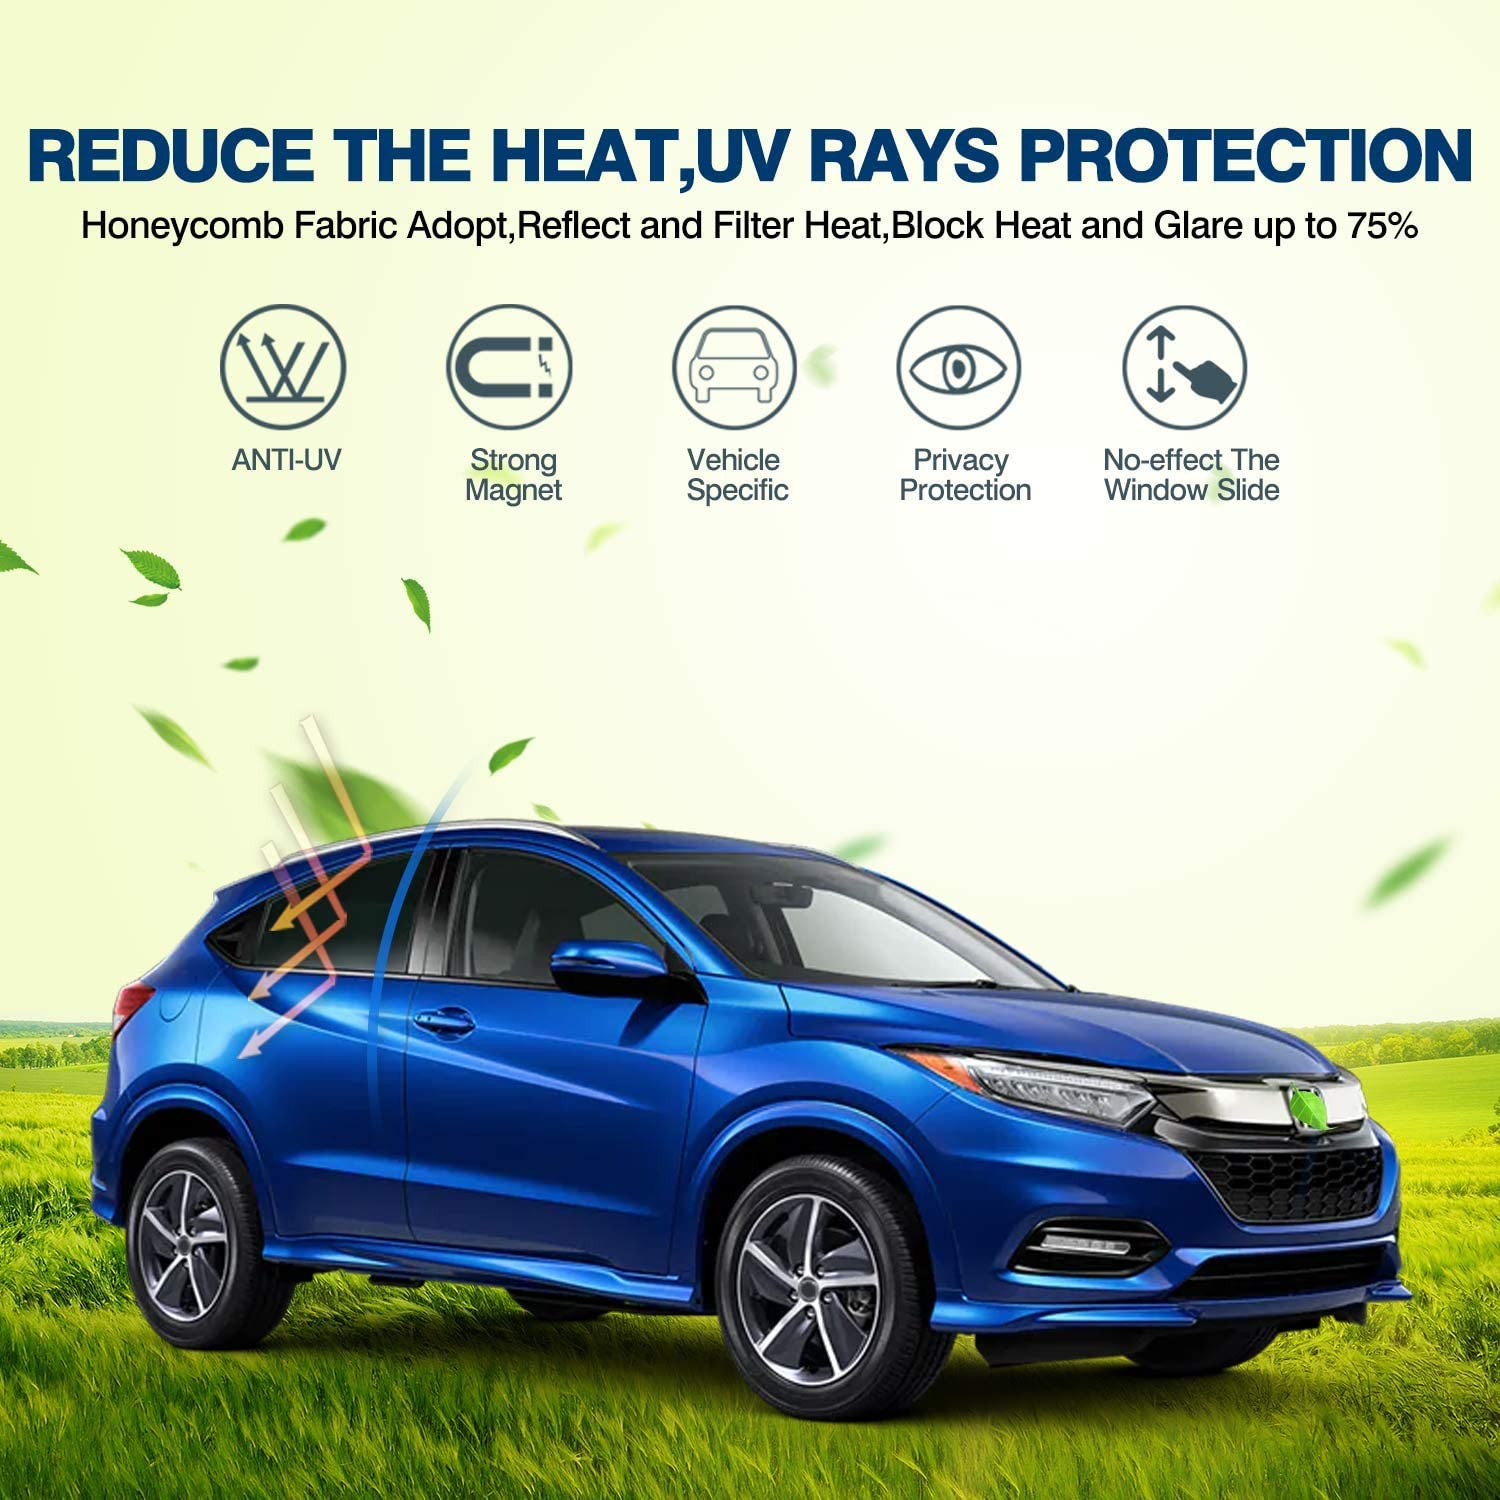 Mixsuper Newly Update Model 3 Sun Shades,Car Sunroof UV Rays Protection Window Shade for Tesla Model 3,Half Covered Rear Sunshade Type with Free UV and Heat Insulation Film